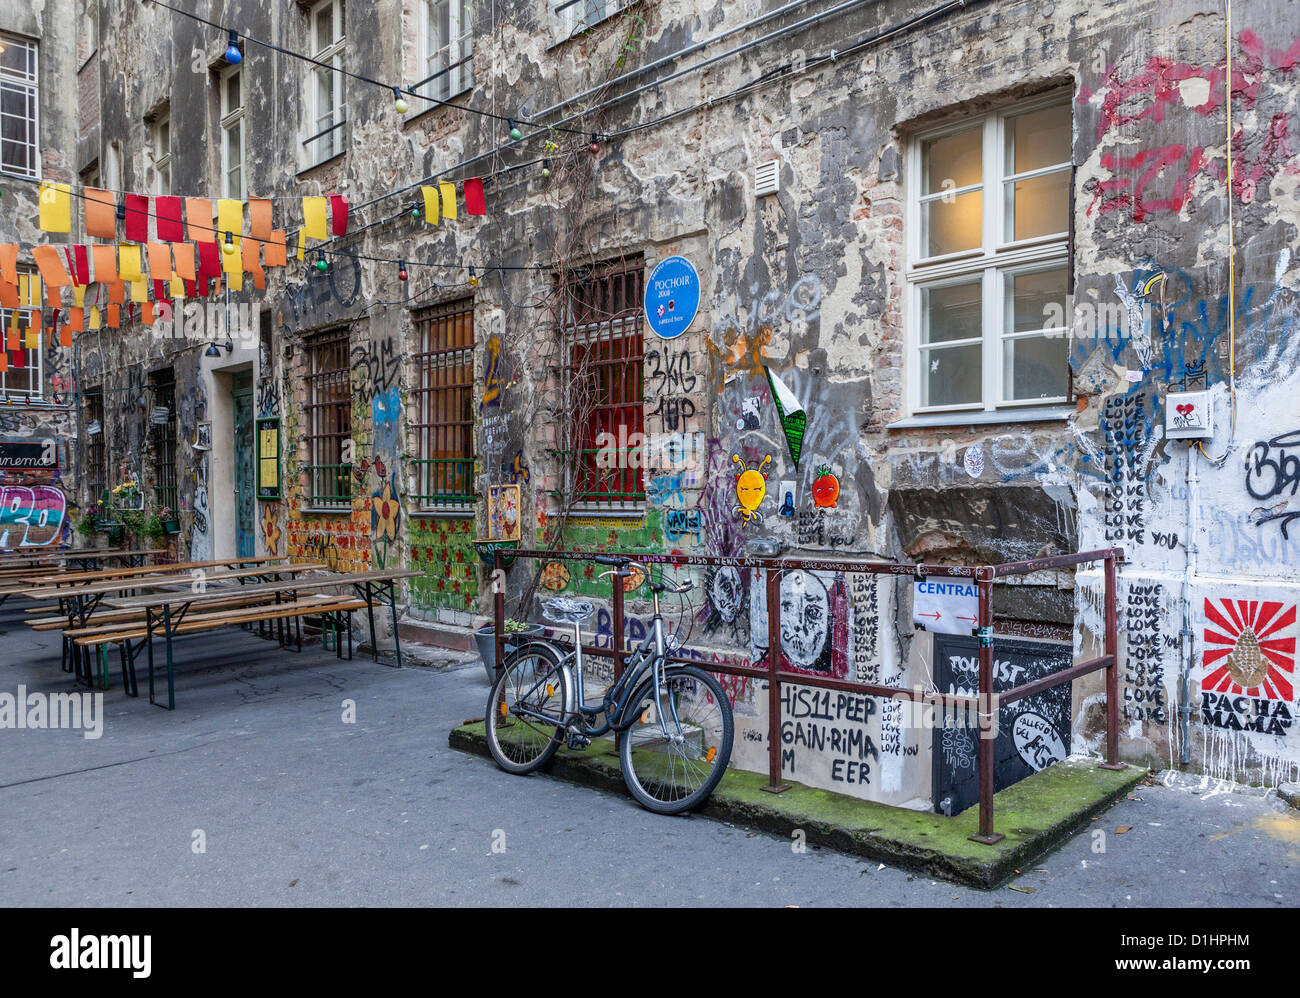 Graffiti and street art decorates the Inner Courtyard of